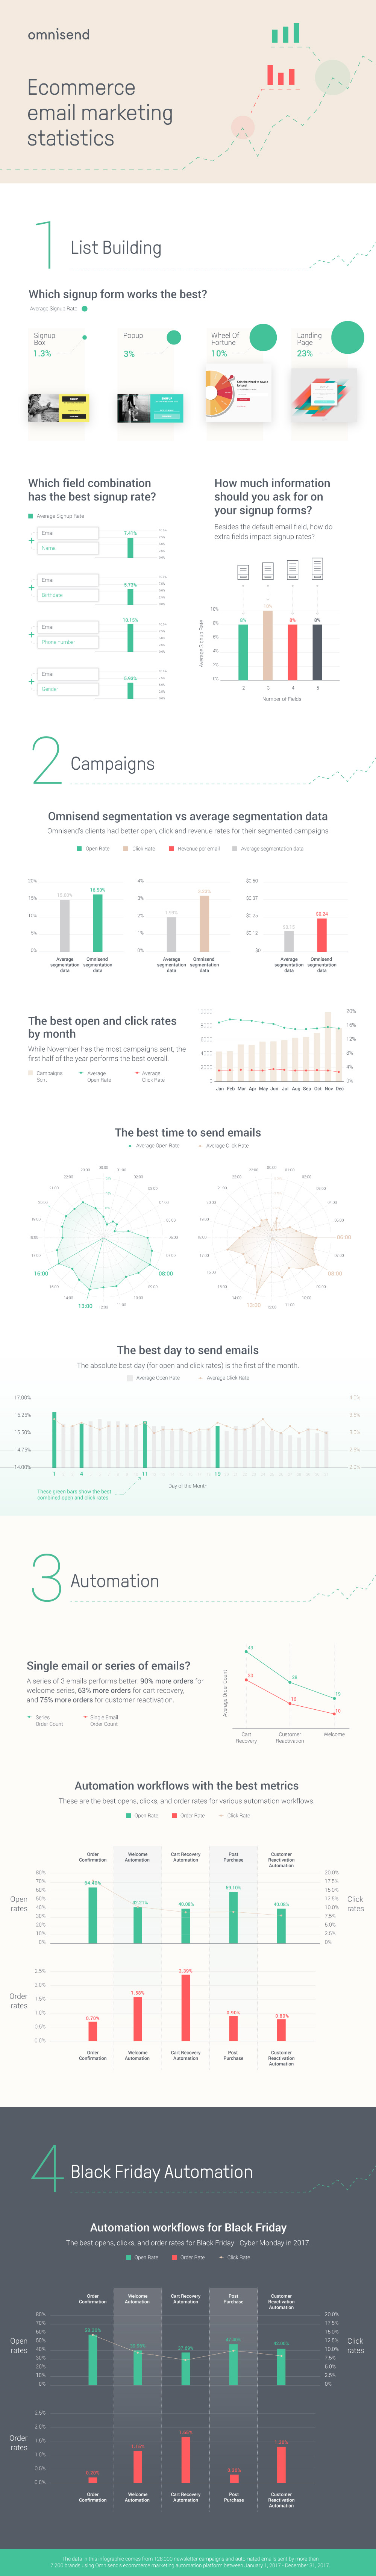 Ecommerce Email Marketing Statistics for 2018 [Infographic]